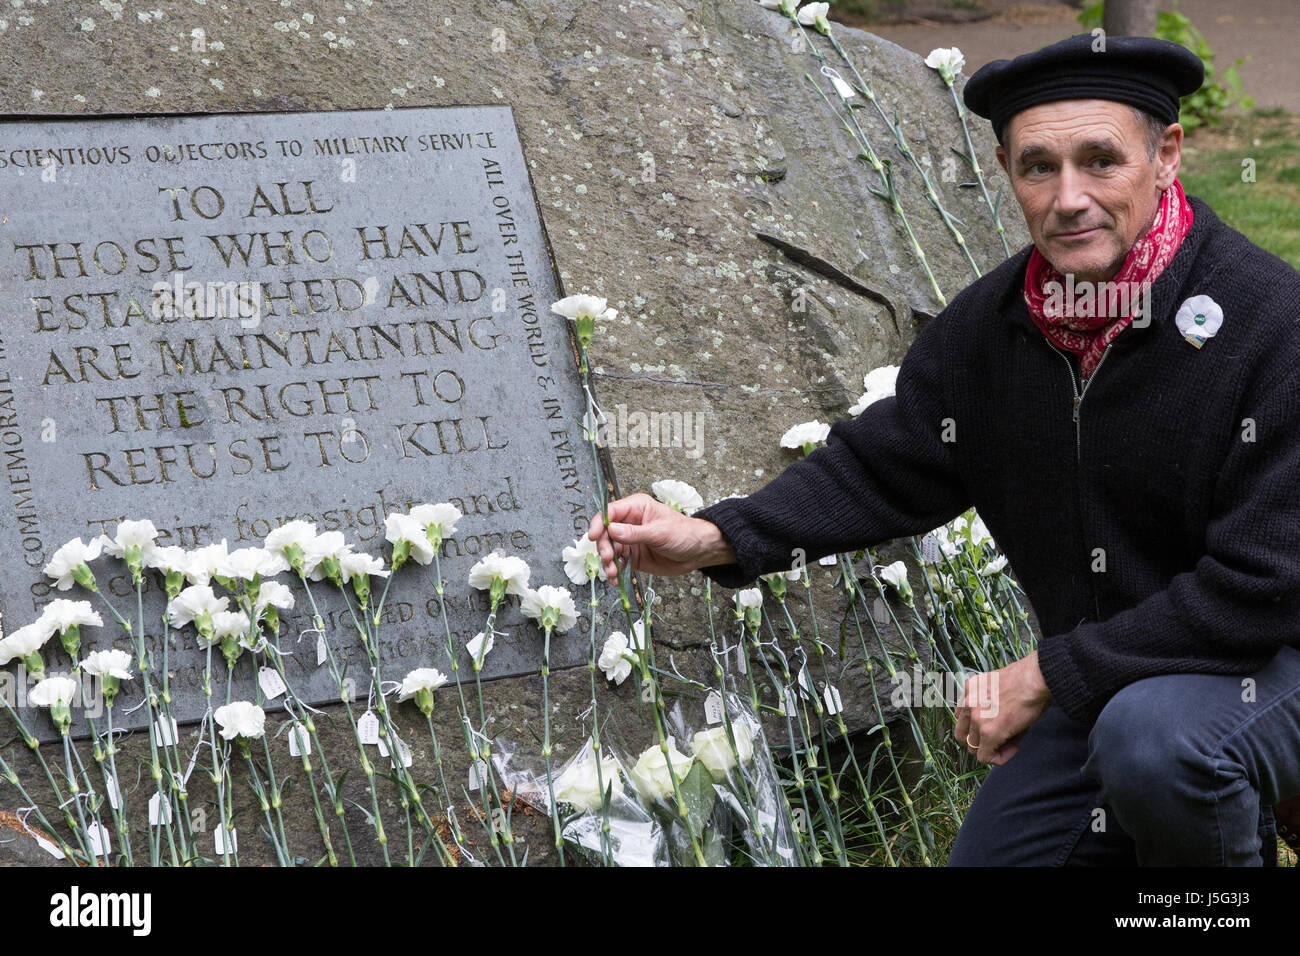 London, UK. 15th May, 2017. Sir Mark Rylance places a white flower in front of the Conscientious Objectors' - Stock Image